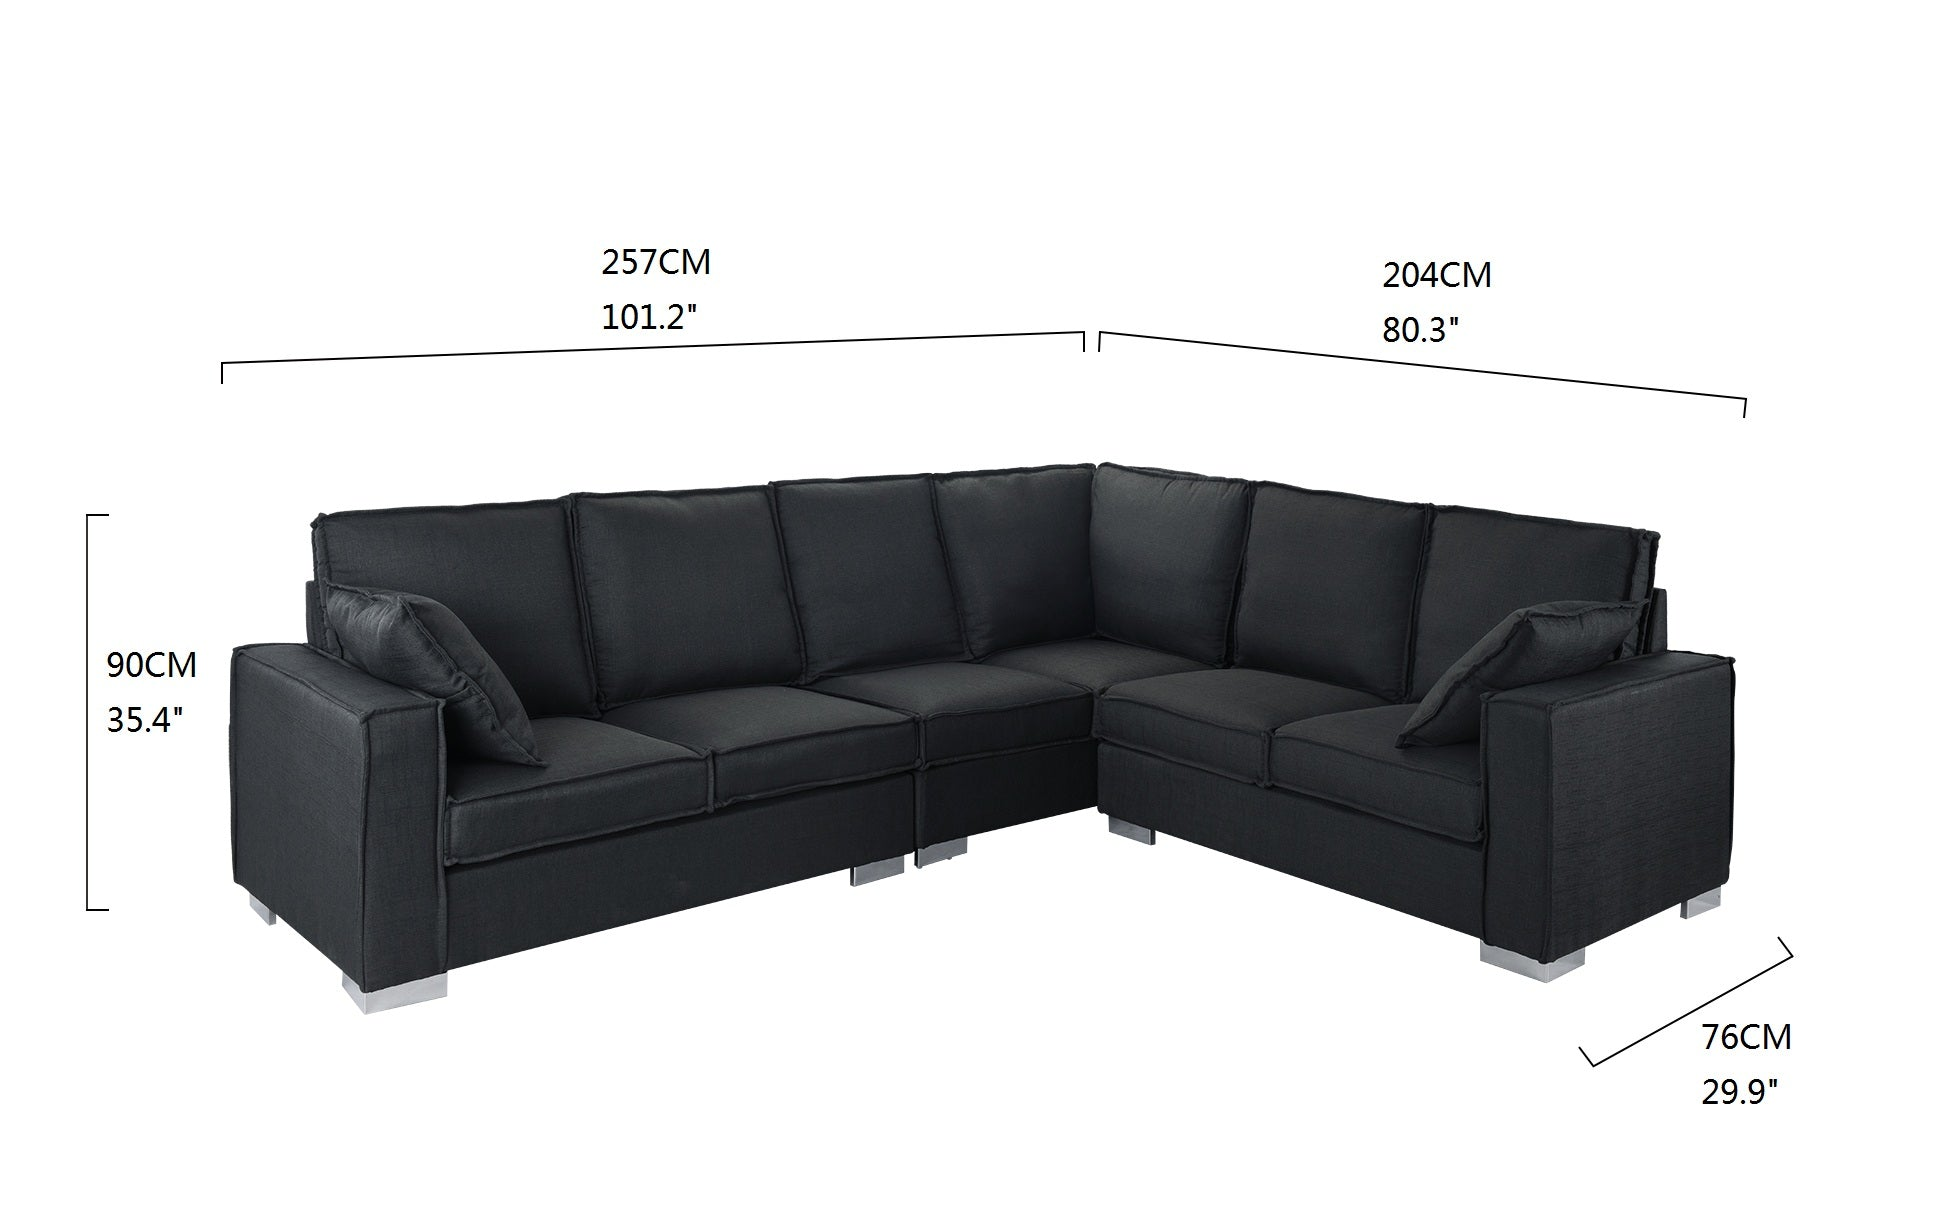 Prime Lamer Contemporary 6 Seat Sectional Sofa Andrewgaddart Wooden Chair Designs For Living Room Andrewgaddartcom